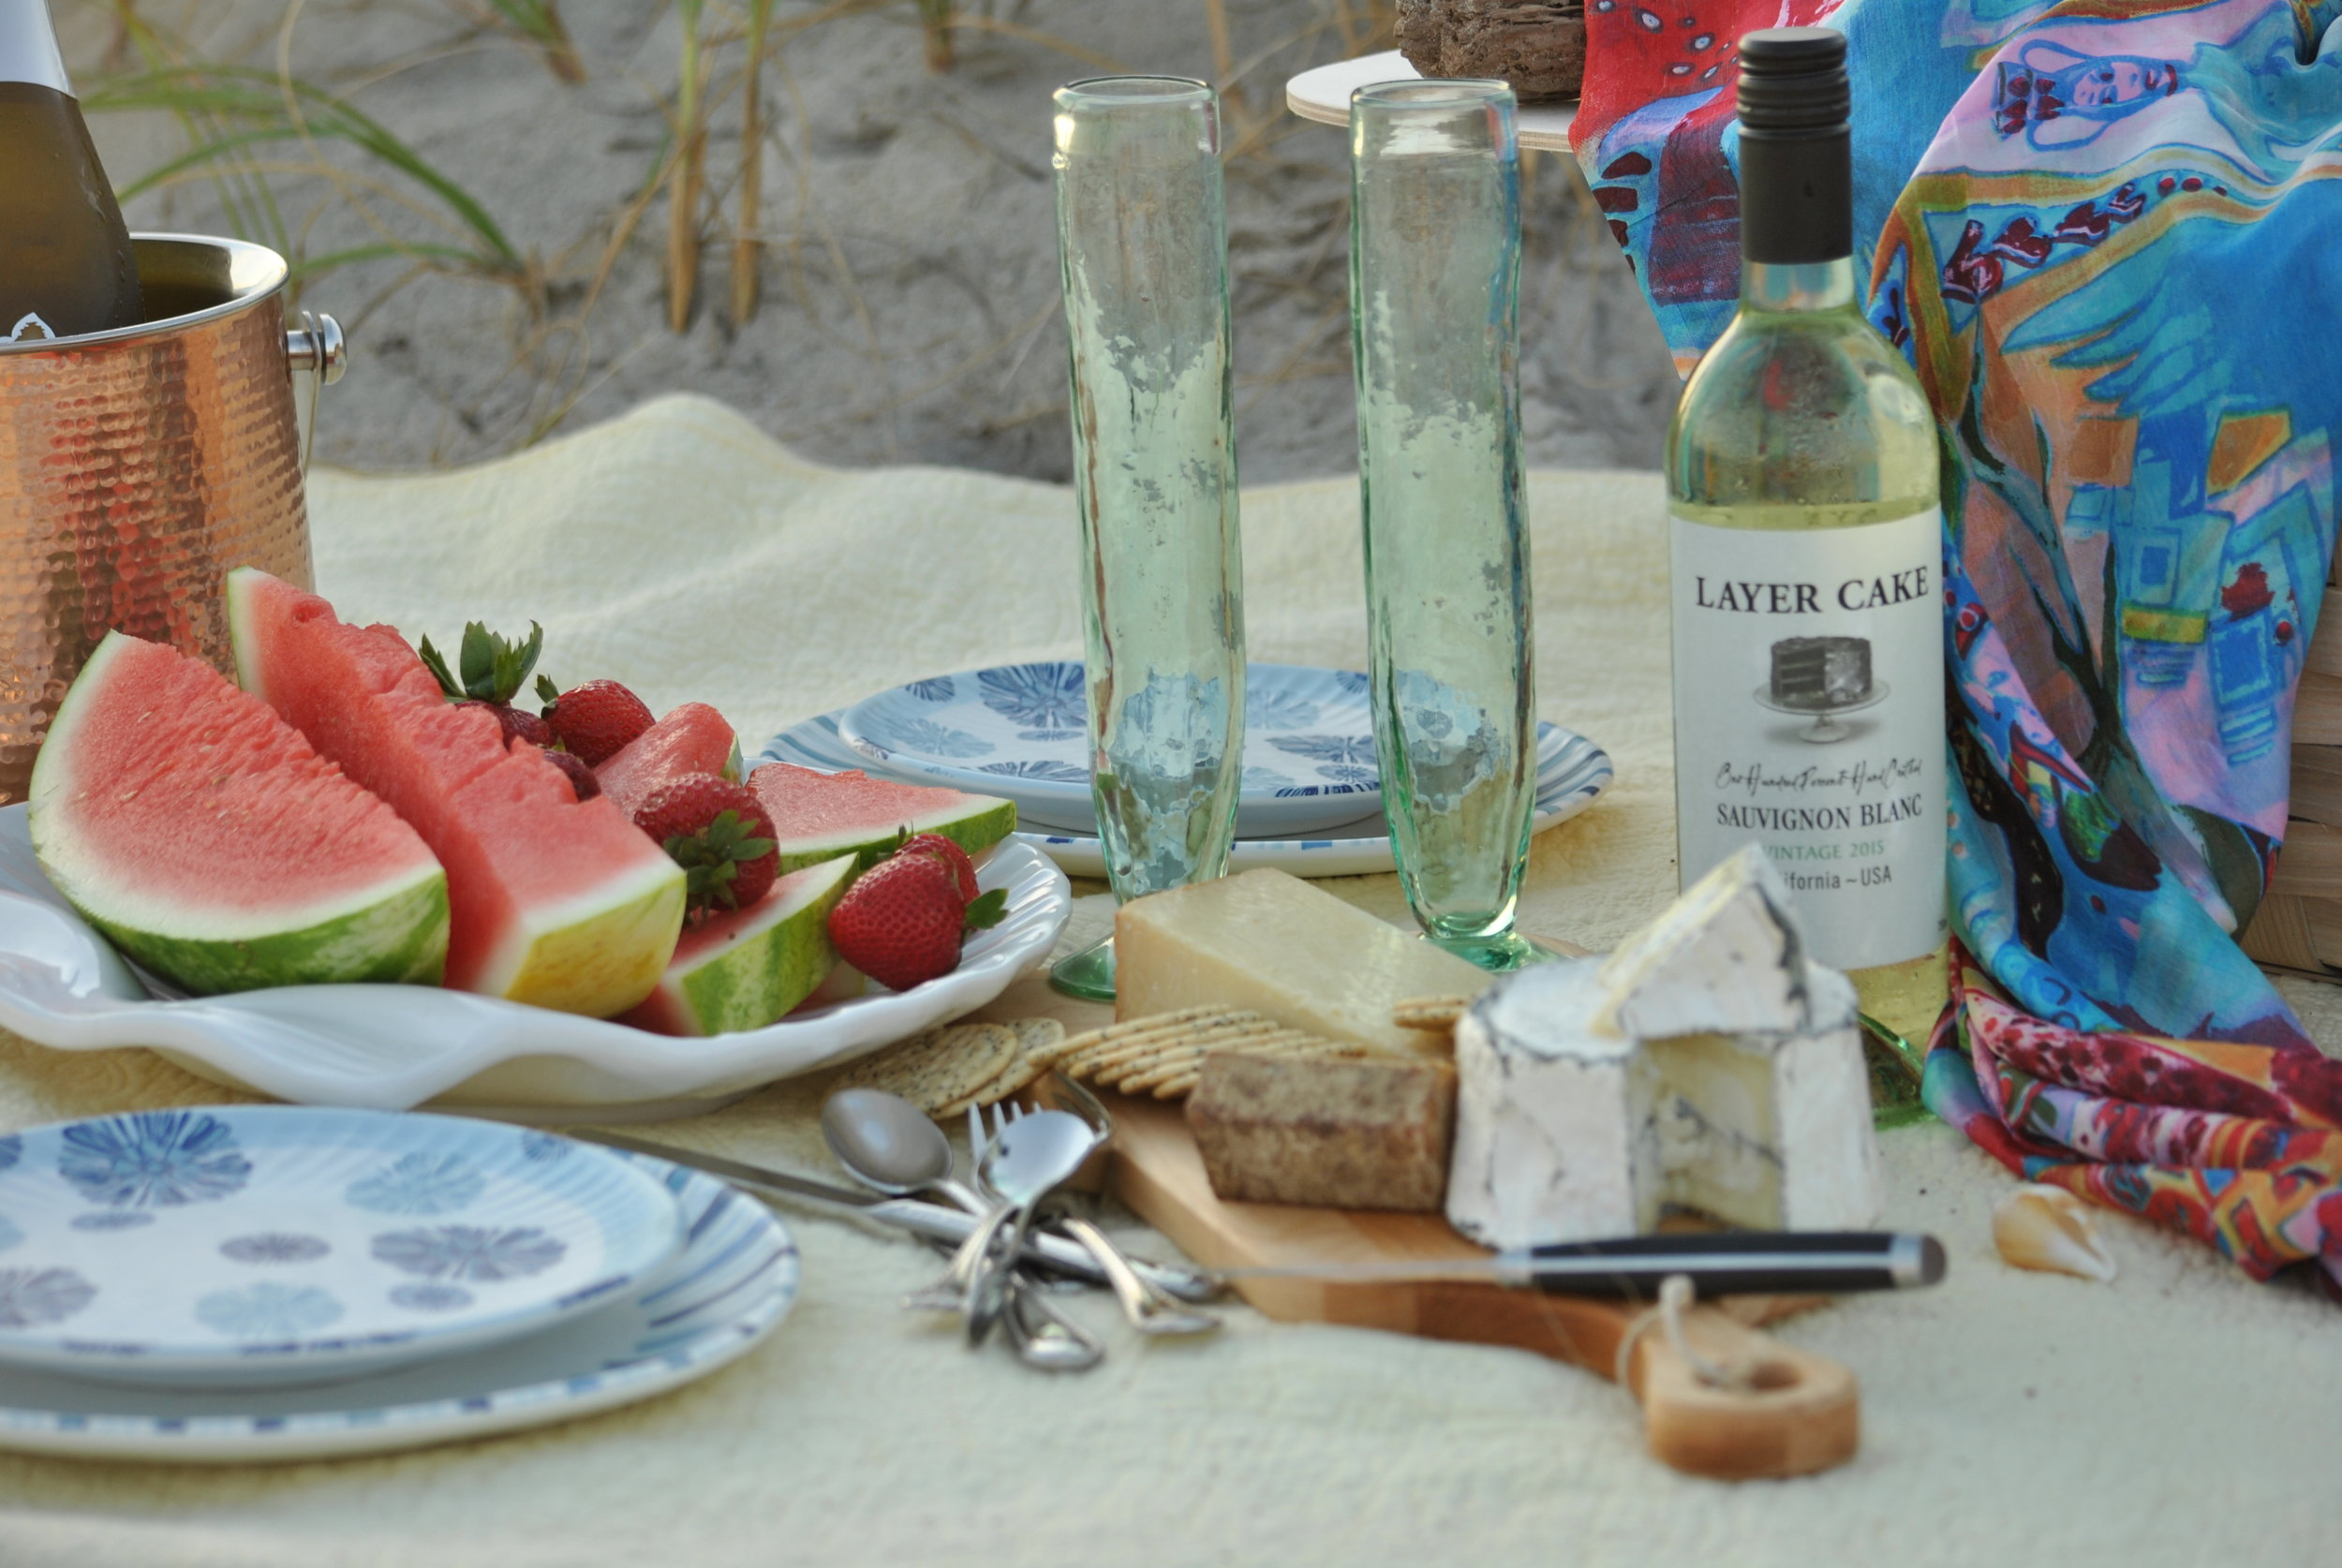 Beach Picnic at Bald Head Island